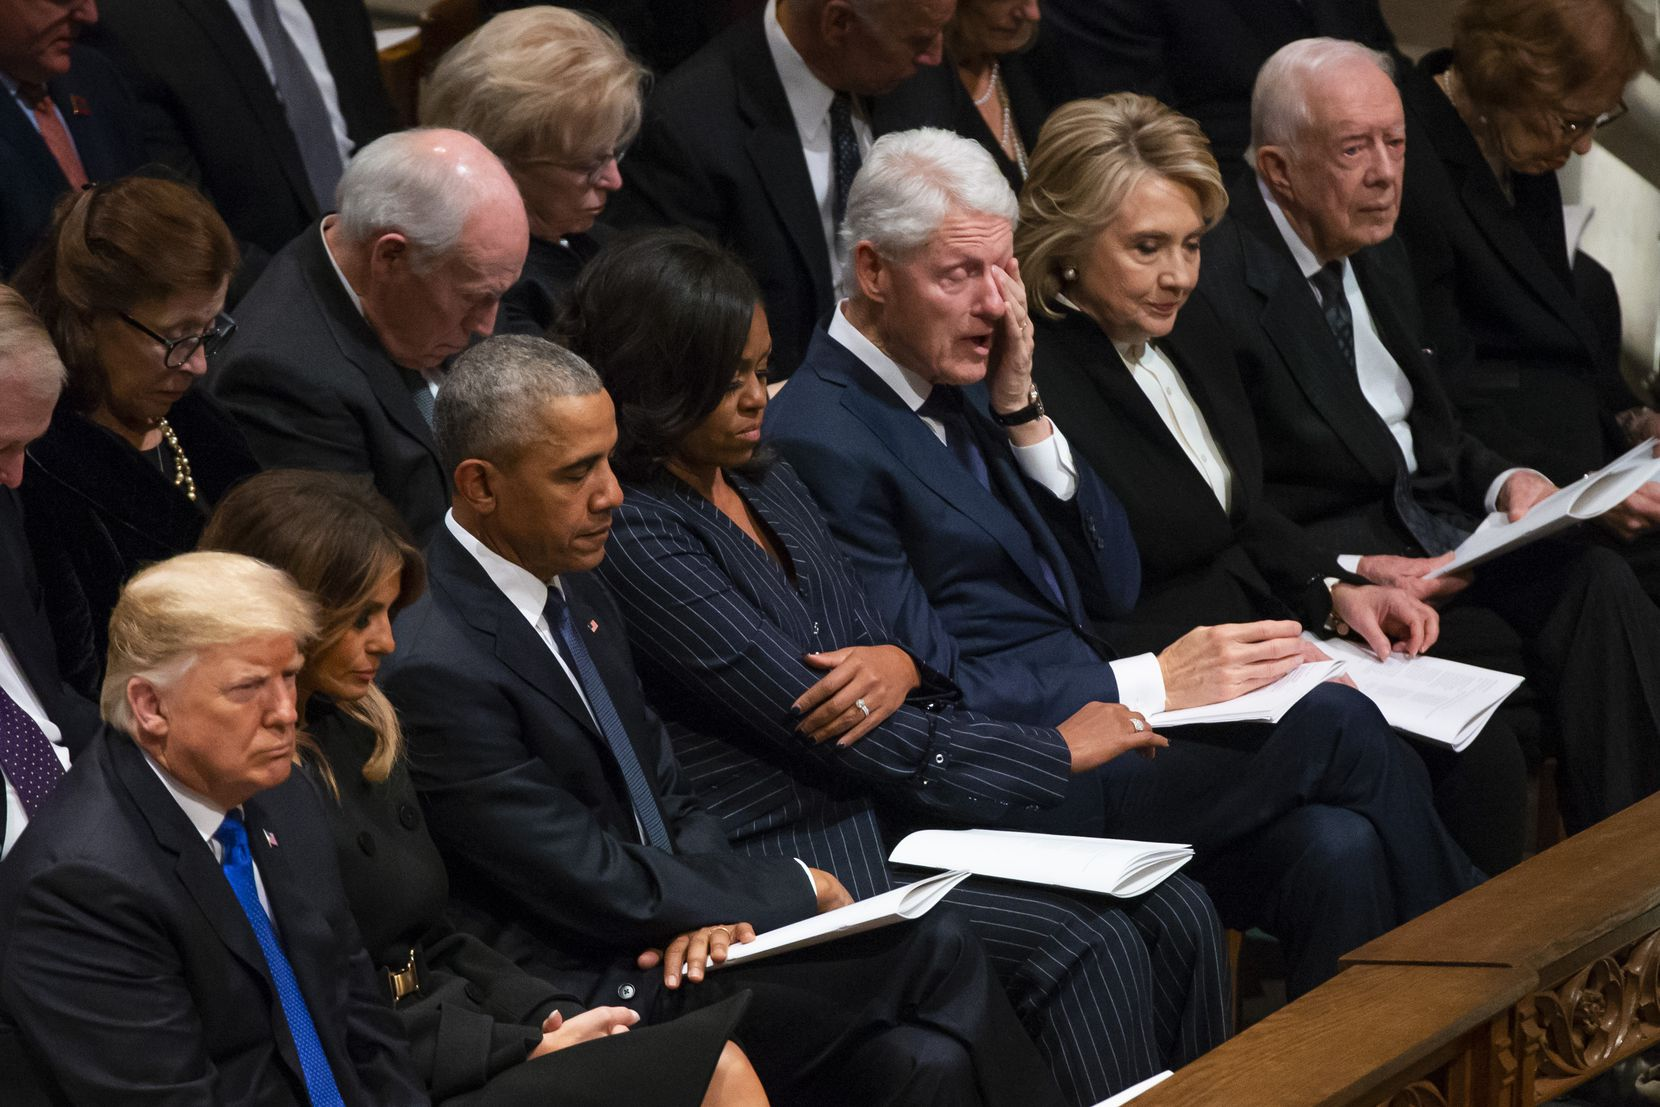 Former President Bill Clinton wipes away tears as Rev. Russel Levenson of St. Martin's Episcopal Church in Houston speaks during the State Funeral for George H.W. Bush, the 41st President of the United States, at the Washington National Cathedral on Wednesday, Dec. 5, 2018, in Washington. From left are President Donald Trump, first lady Melania Trump, former President Barack Obama, Michelle Obama, former President Bill Clinton, former Secretary of State Hillary Clinton, former President Jimmy Carter, and Rosalynn Carter. (Smiley N. Pool/The Dallas Morning News)